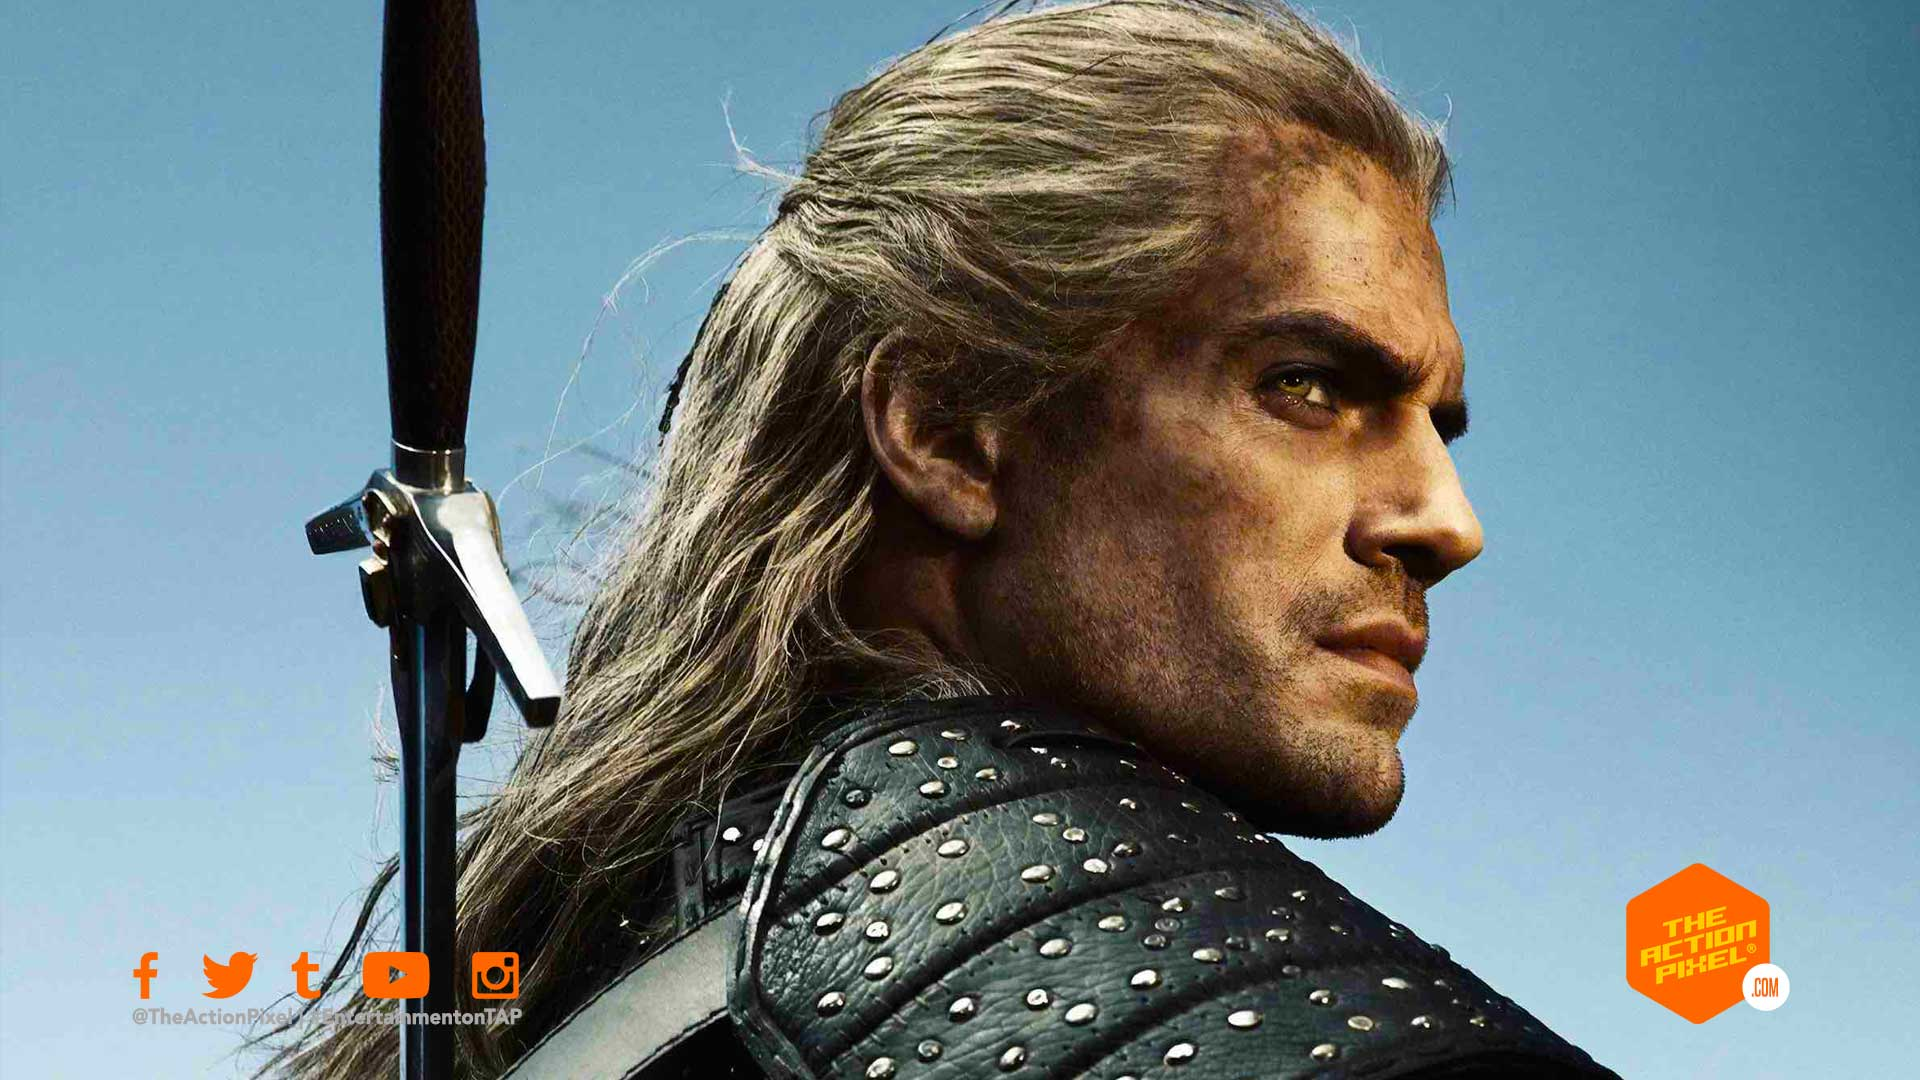 the witcher: blood origins, the witcher, netflix the witcher spin-off, witcher netflix spin-off, netflix, nx on netflix, the action pixel, geralt of rivia, entertainment on tap, featured,